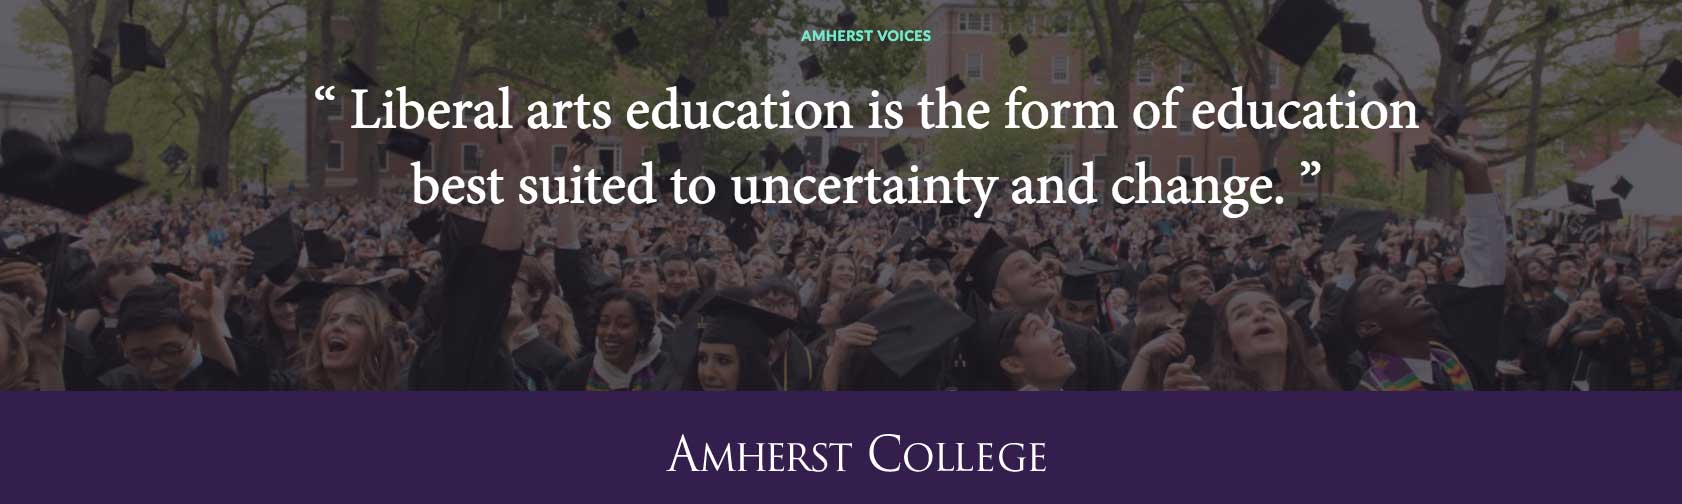 Quote from Biddy Martin's Commencement Address